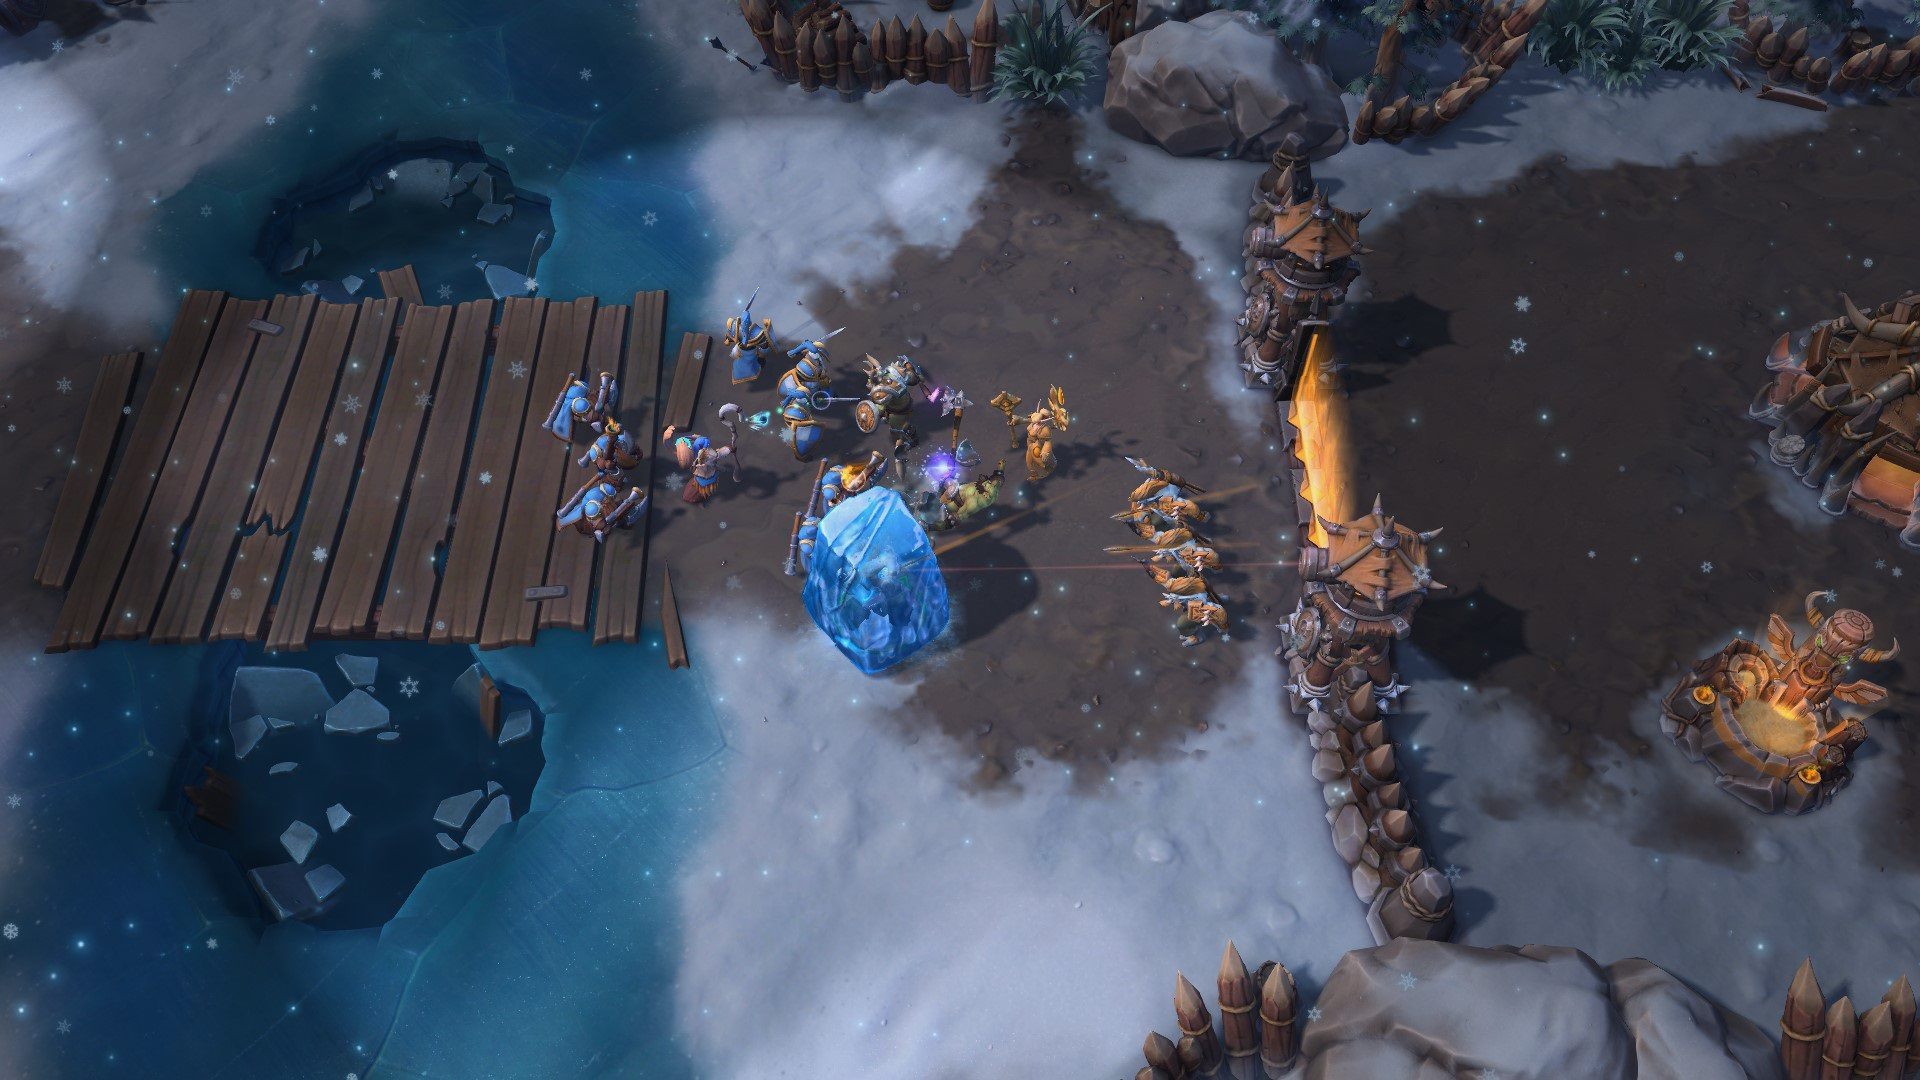 Mei Is Basically The Tank Heroes Of The Storm Desperately Needed Mei was assigned to a monitoring station in the antarctic when a polar storm cut it off from the outside world, ultimately forcing all of the scientists. tank heroes of the storm desperately needed